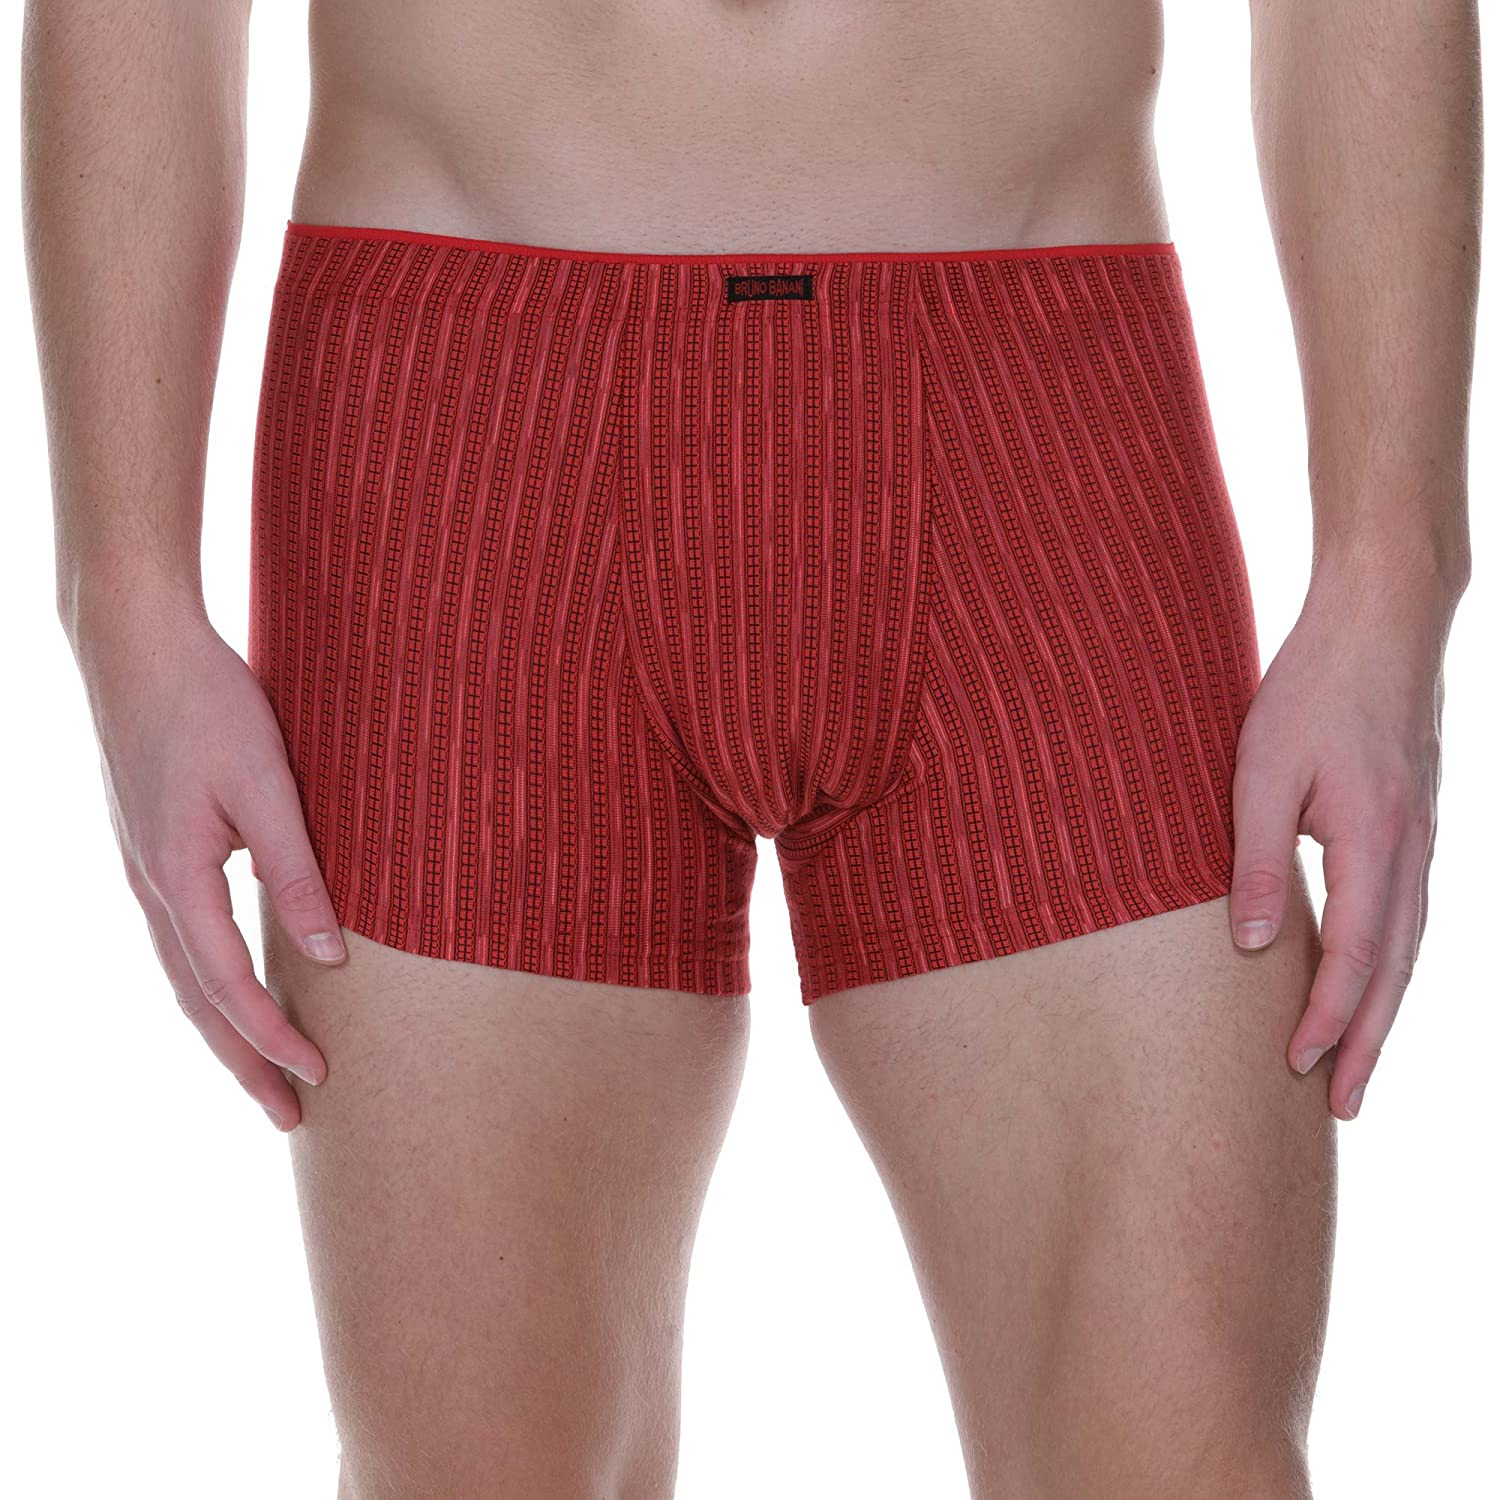 Bruno Banani Short Smart City Bóxer para Hombre